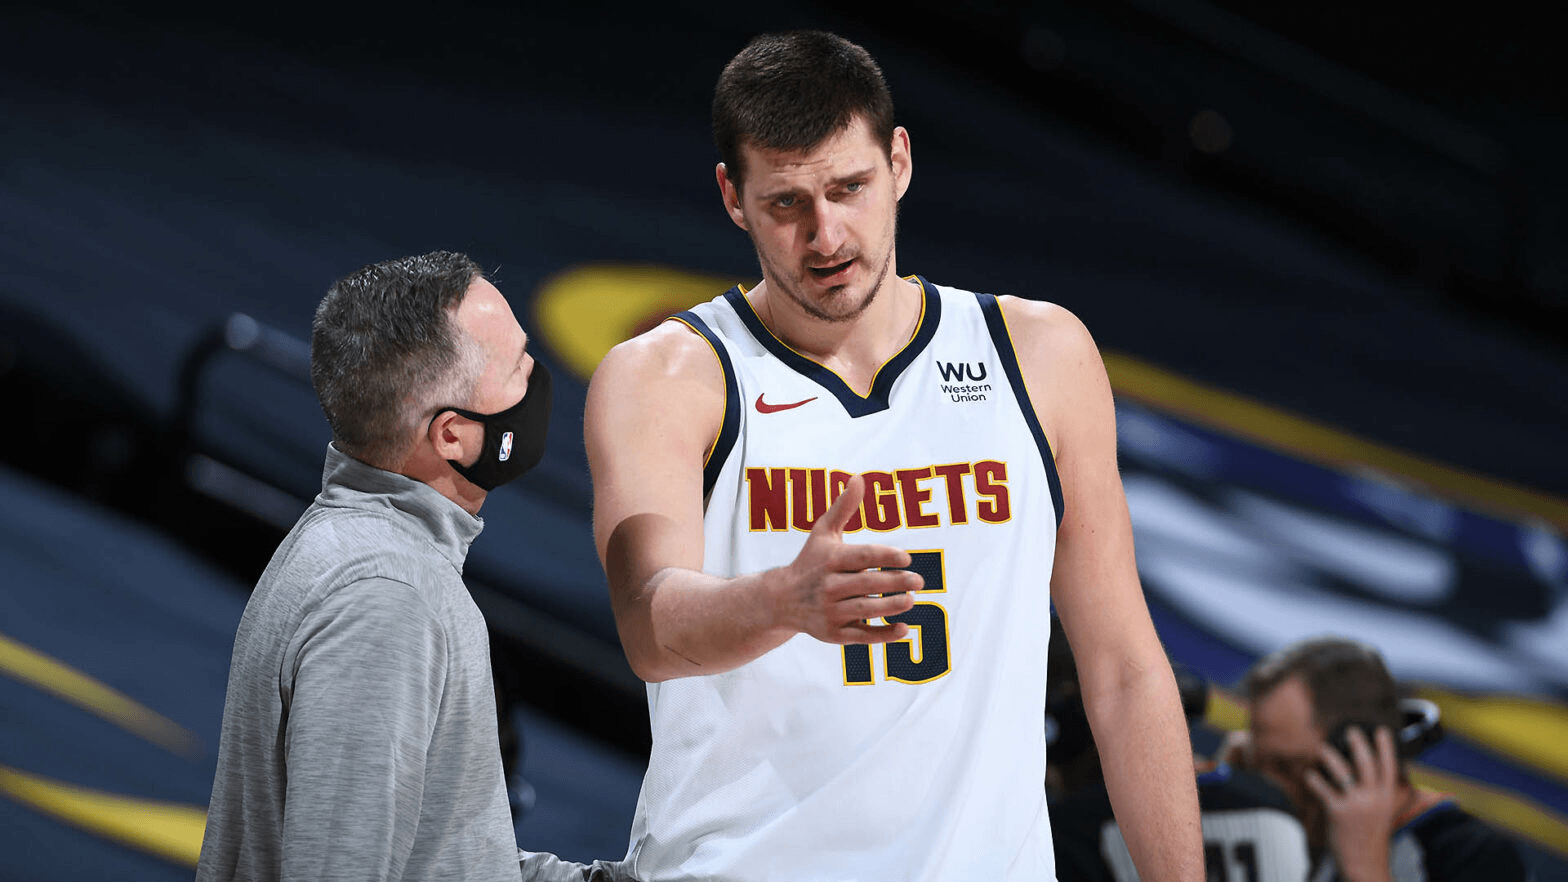 DENVER, CO – DECEMBER 28: Head Coach Michael Malone and Nikola Jokic #15 of the Denver Nuggets talk during the game against the Houston Rockets on December 28, 2020 at the Pepsi Center in Denver, Colorado. NOTE TO USER: User expressly acknowledges and agrees that, by downloading and/or using this Photograph, user is consenting to the terms and conditions of the Getty Images License Agreement. Mandatory Copyright Notice: Copyright 2020 NBAE (Photo by Garrett Ellwood/NBAE via Getty Images)